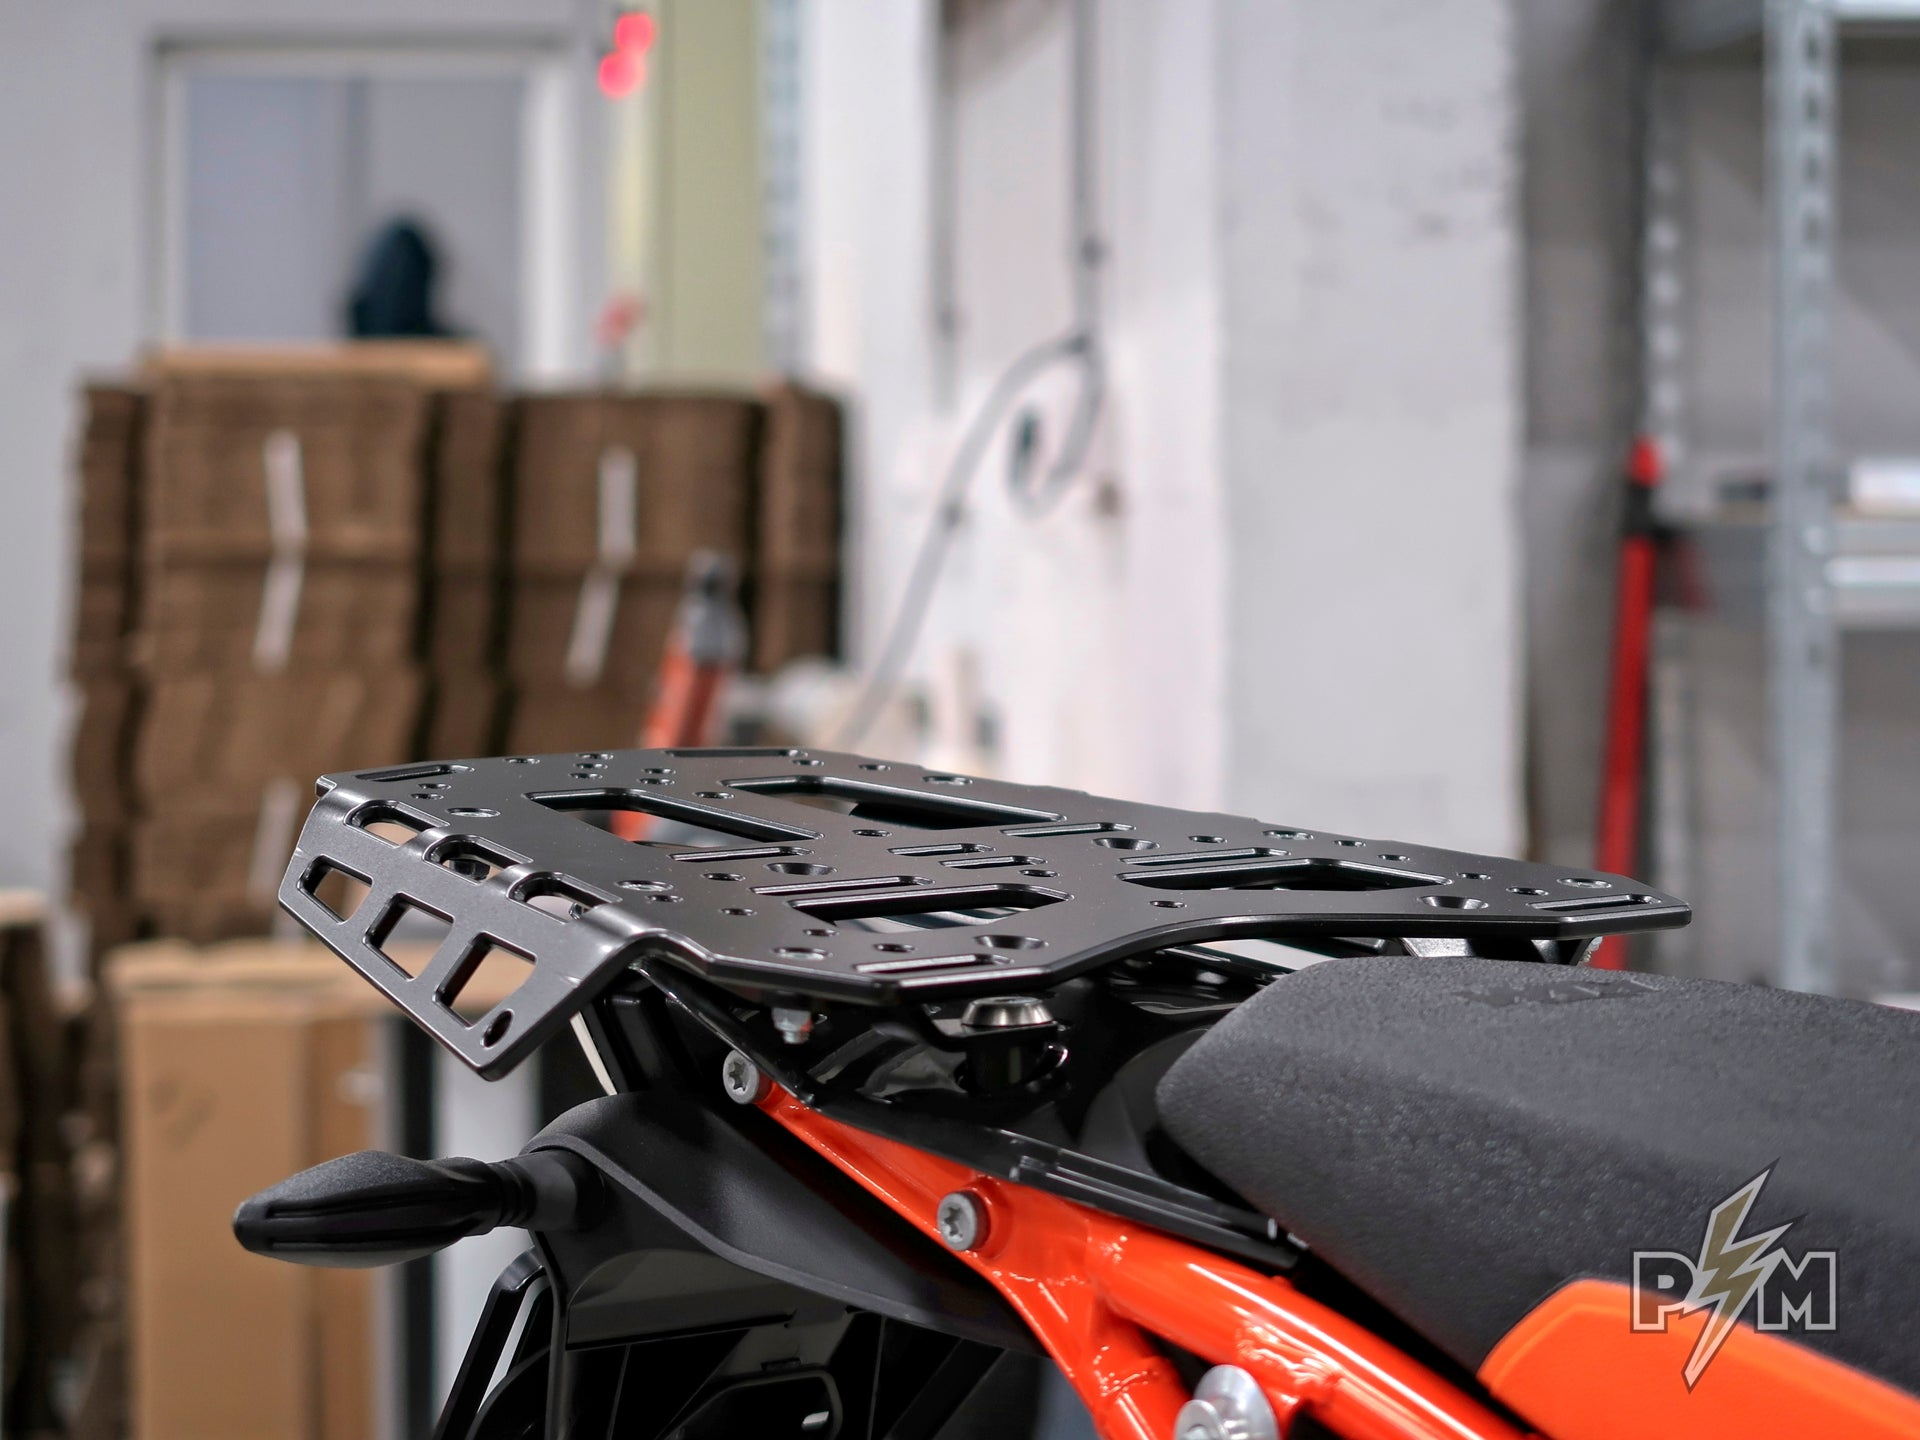 790/1X90 Top luggage rack on KTM 790 Adventure R - brief overview